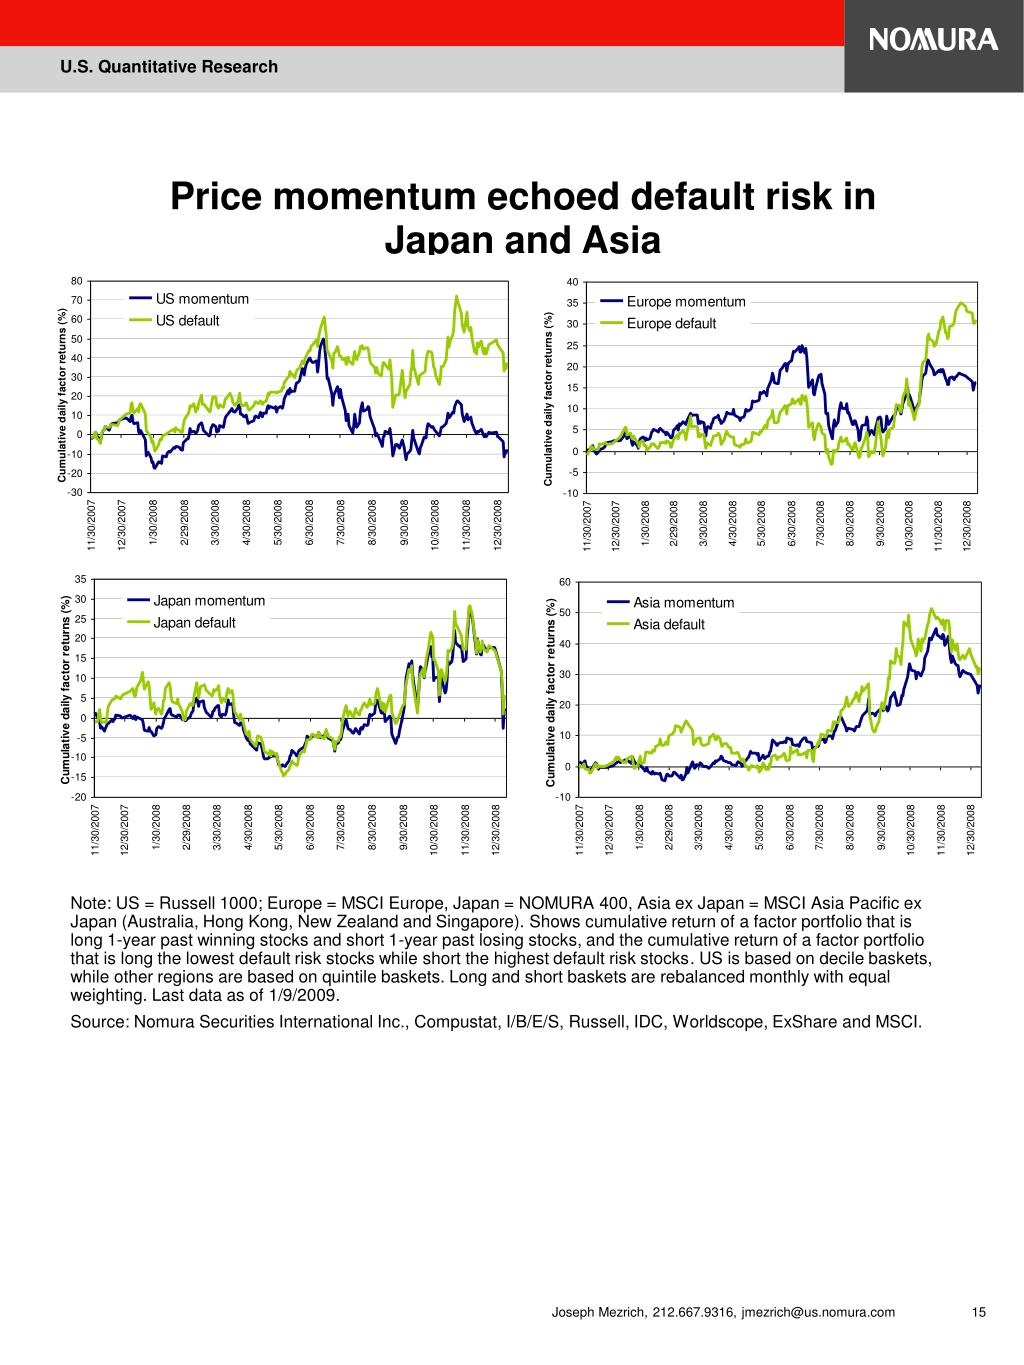 Price momentum echoed default risk in Japan and Asia